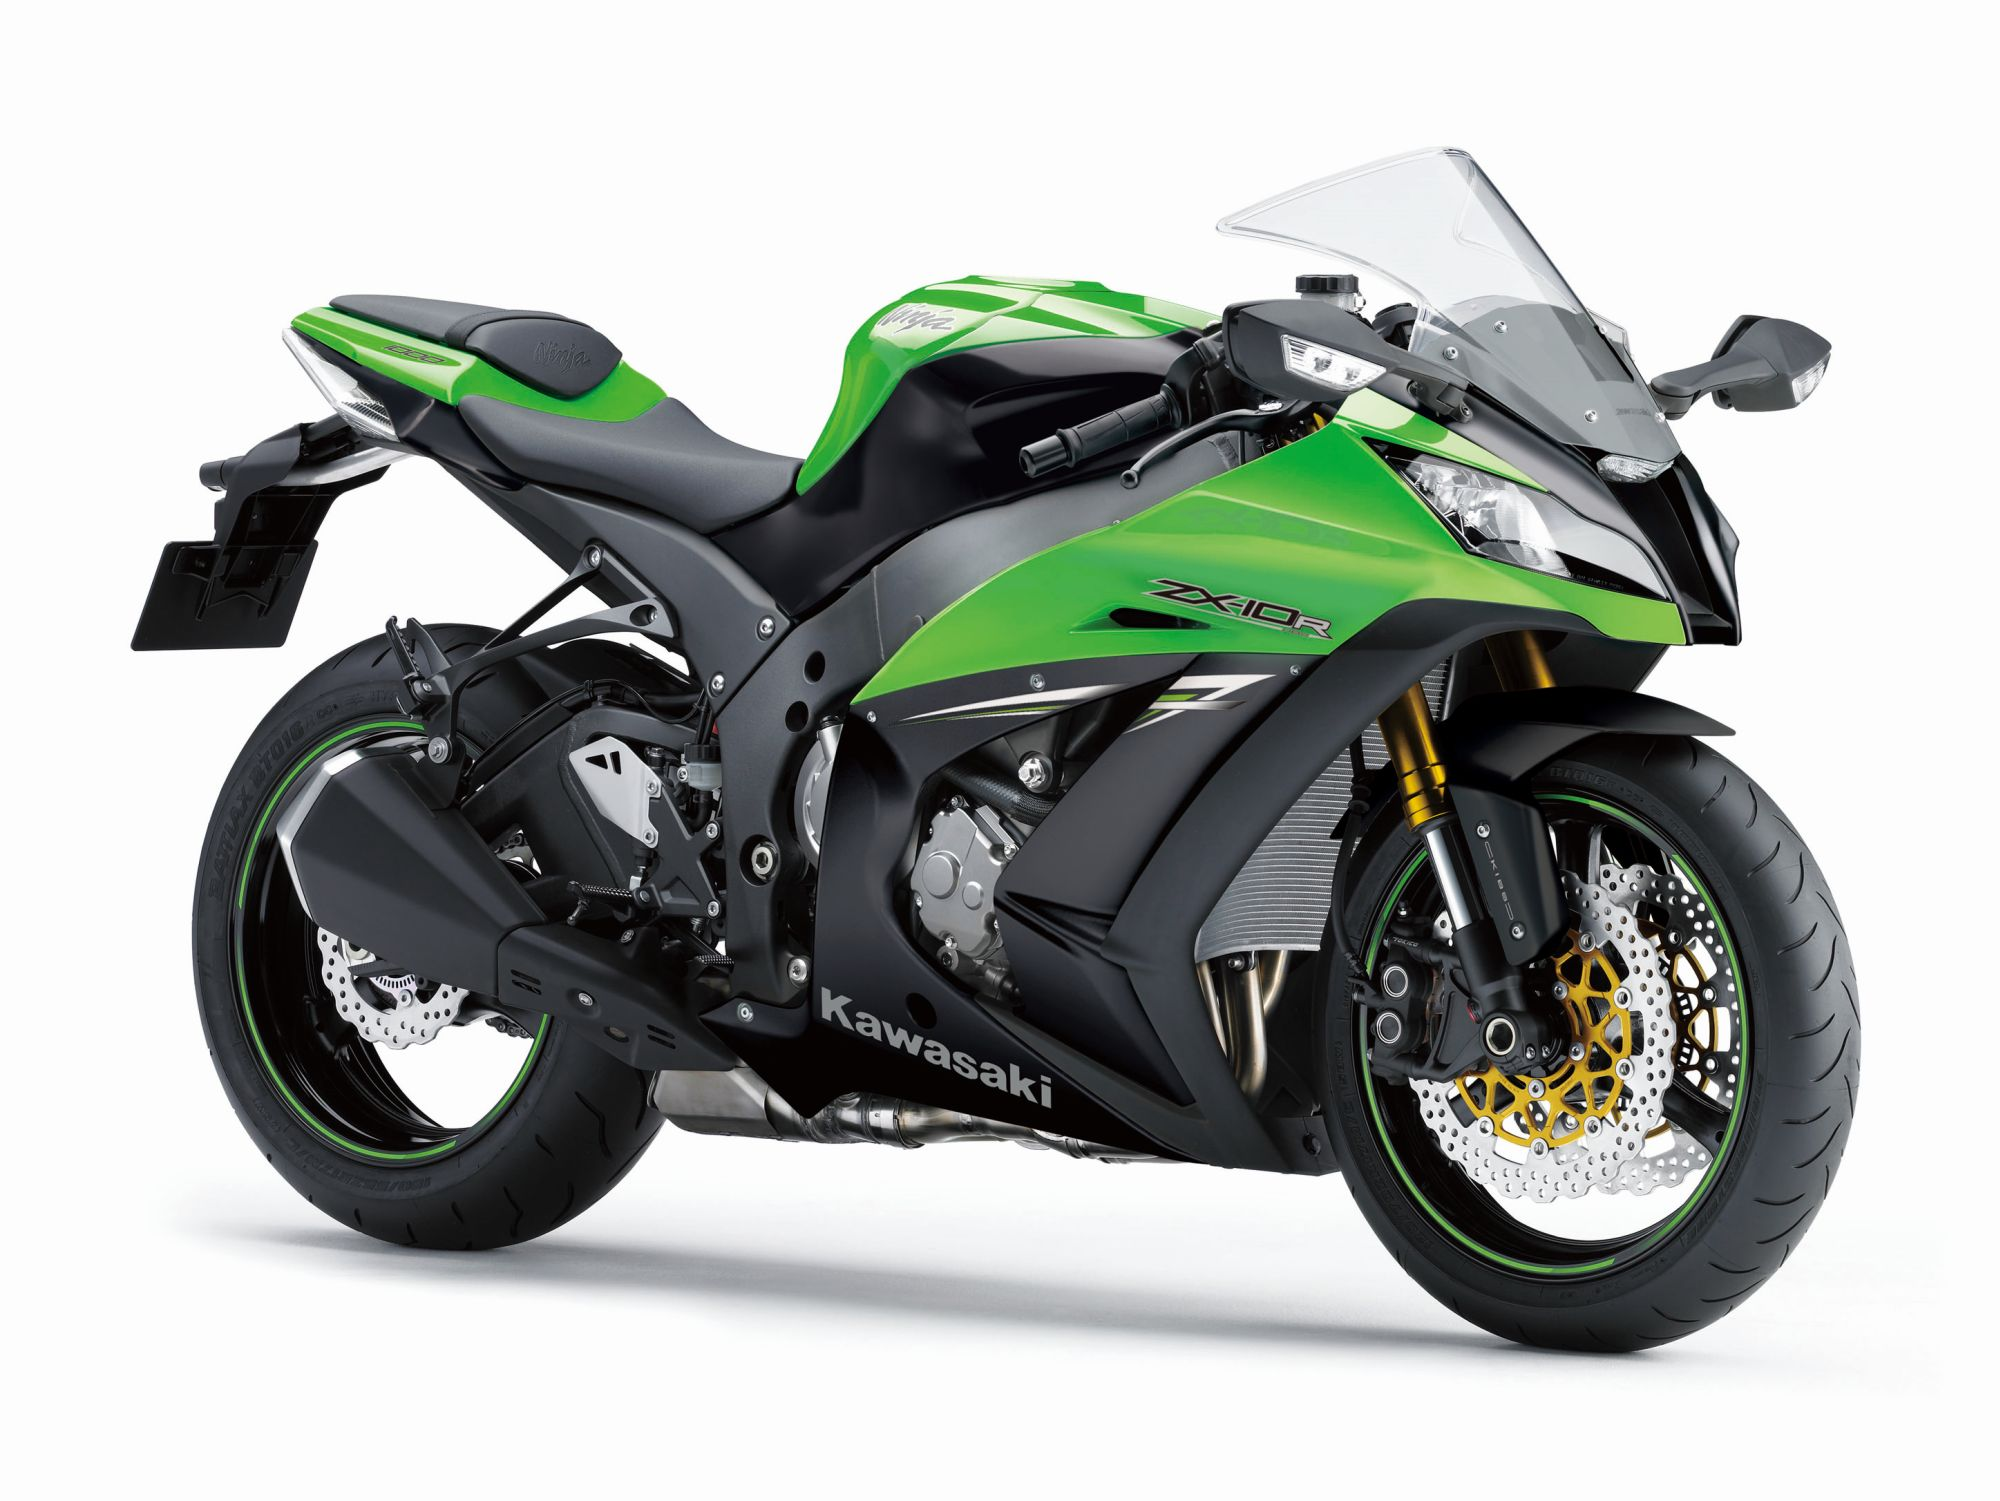 kawasaki zx 10r ninja car interior design. Black Bedroom Furniture Sets. Home Design Ideas